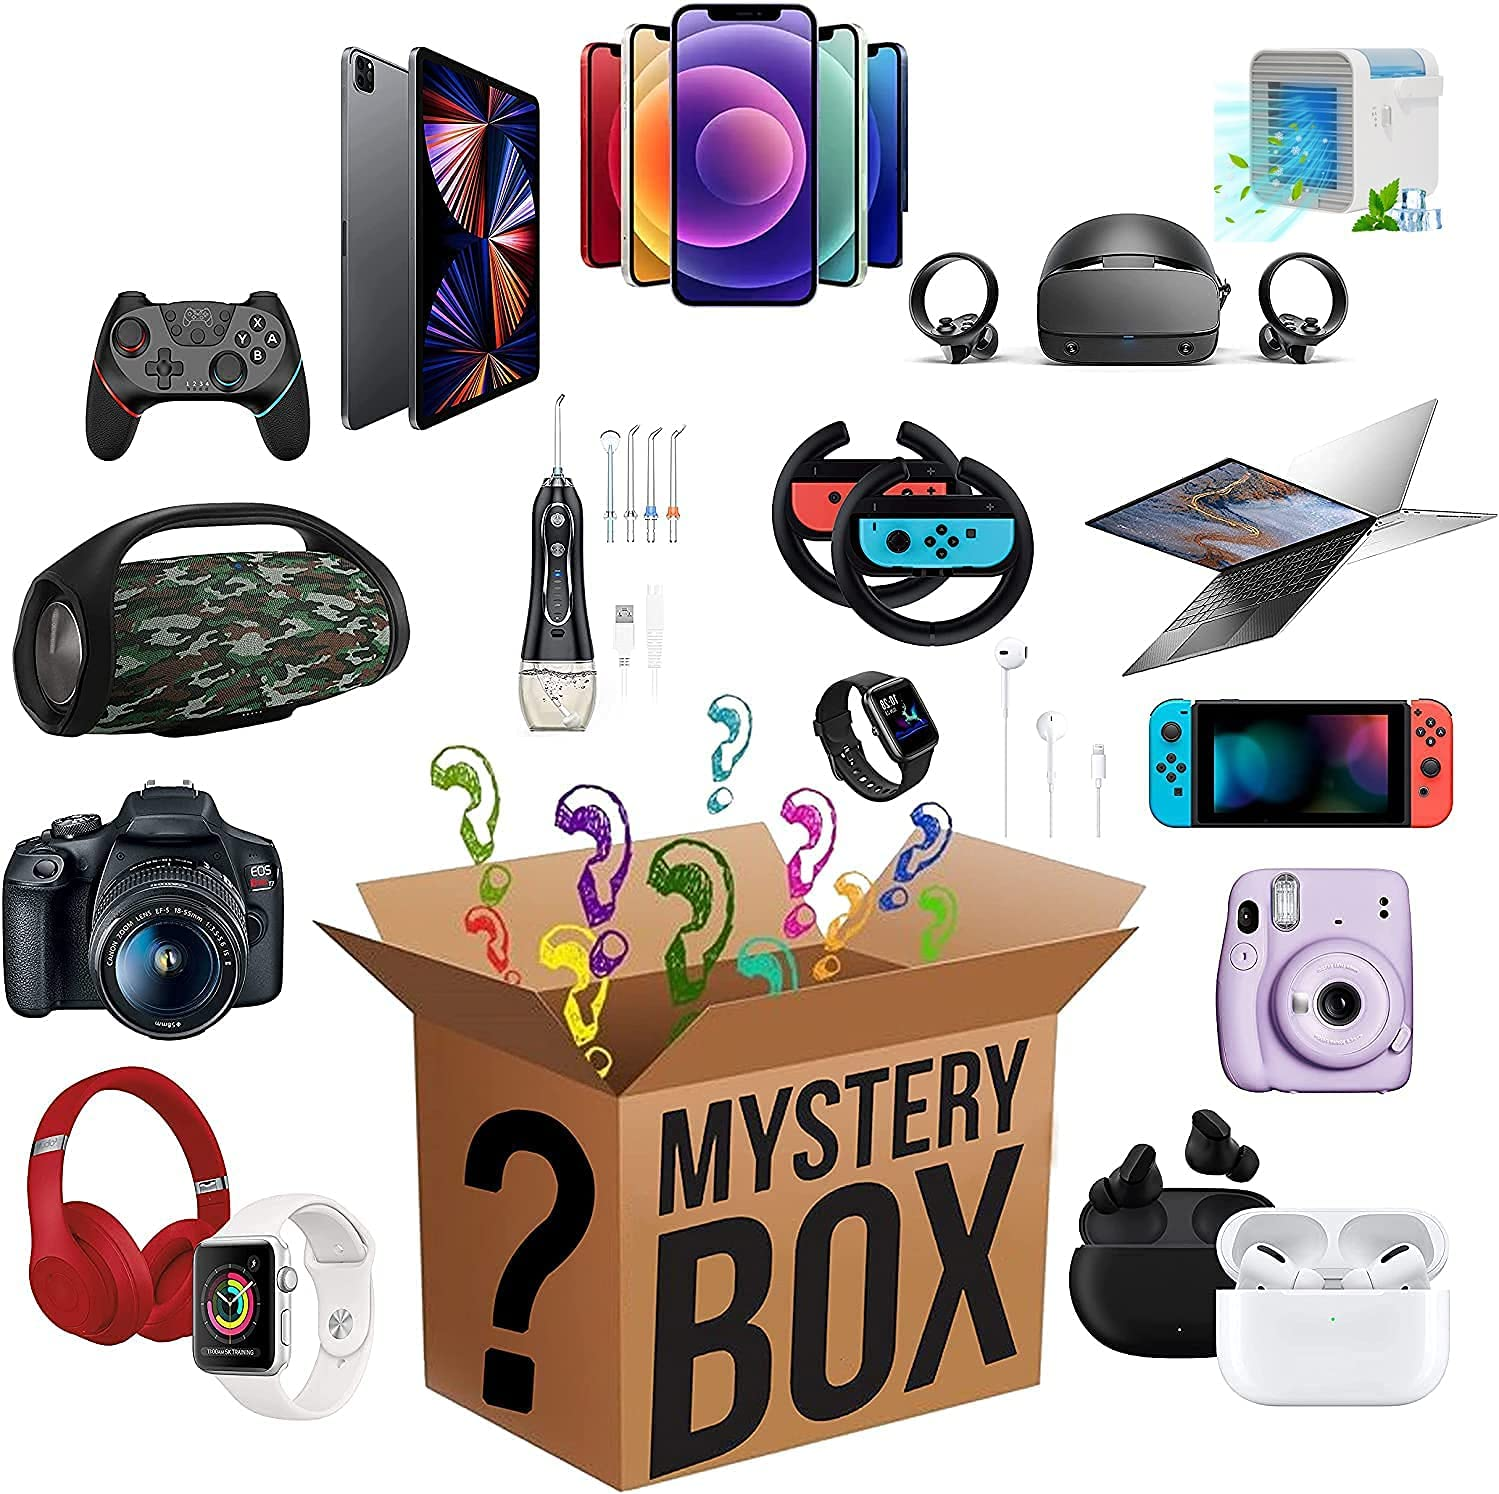 Lucky Box Watch Toy Phone We OFFer at cheap prices Mystery 4 years warranty Super AC Costeffect Blind